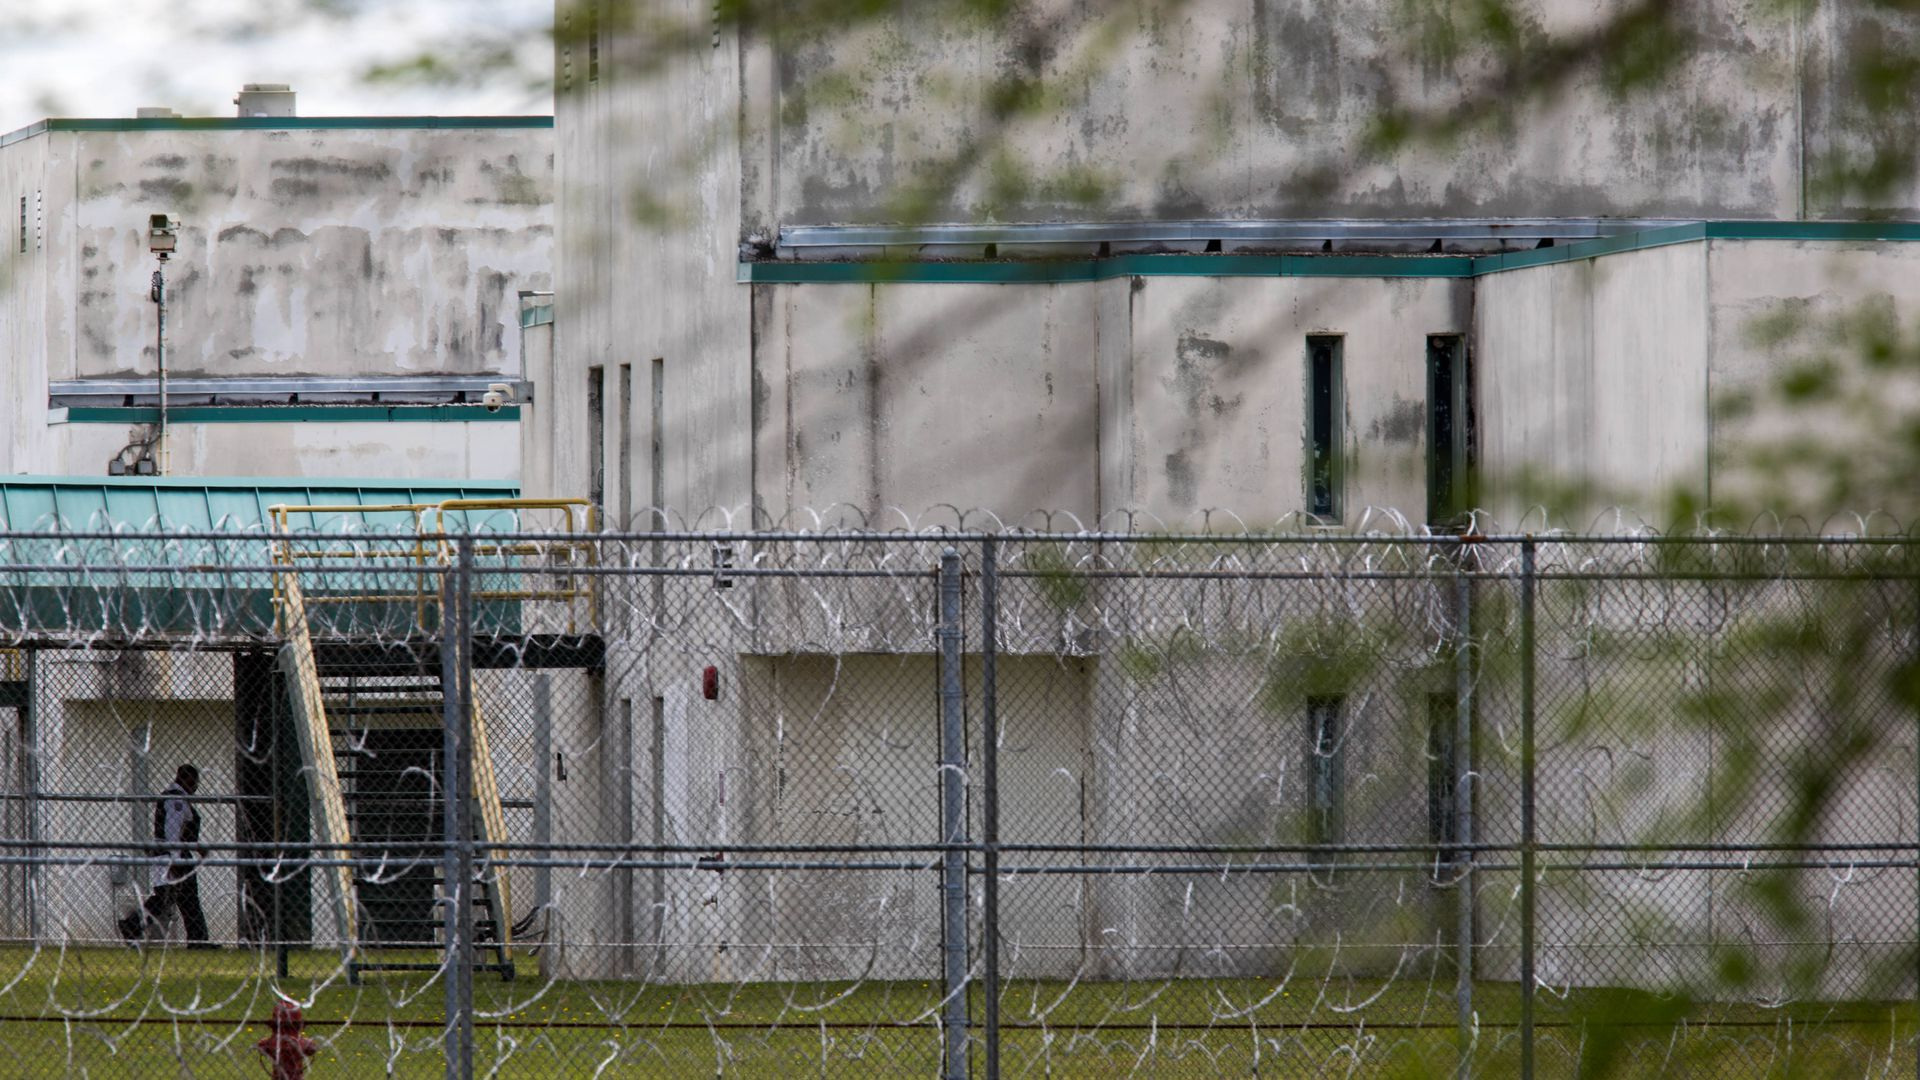 A prison guard runs into a correctional center viewed through a chainlink fence